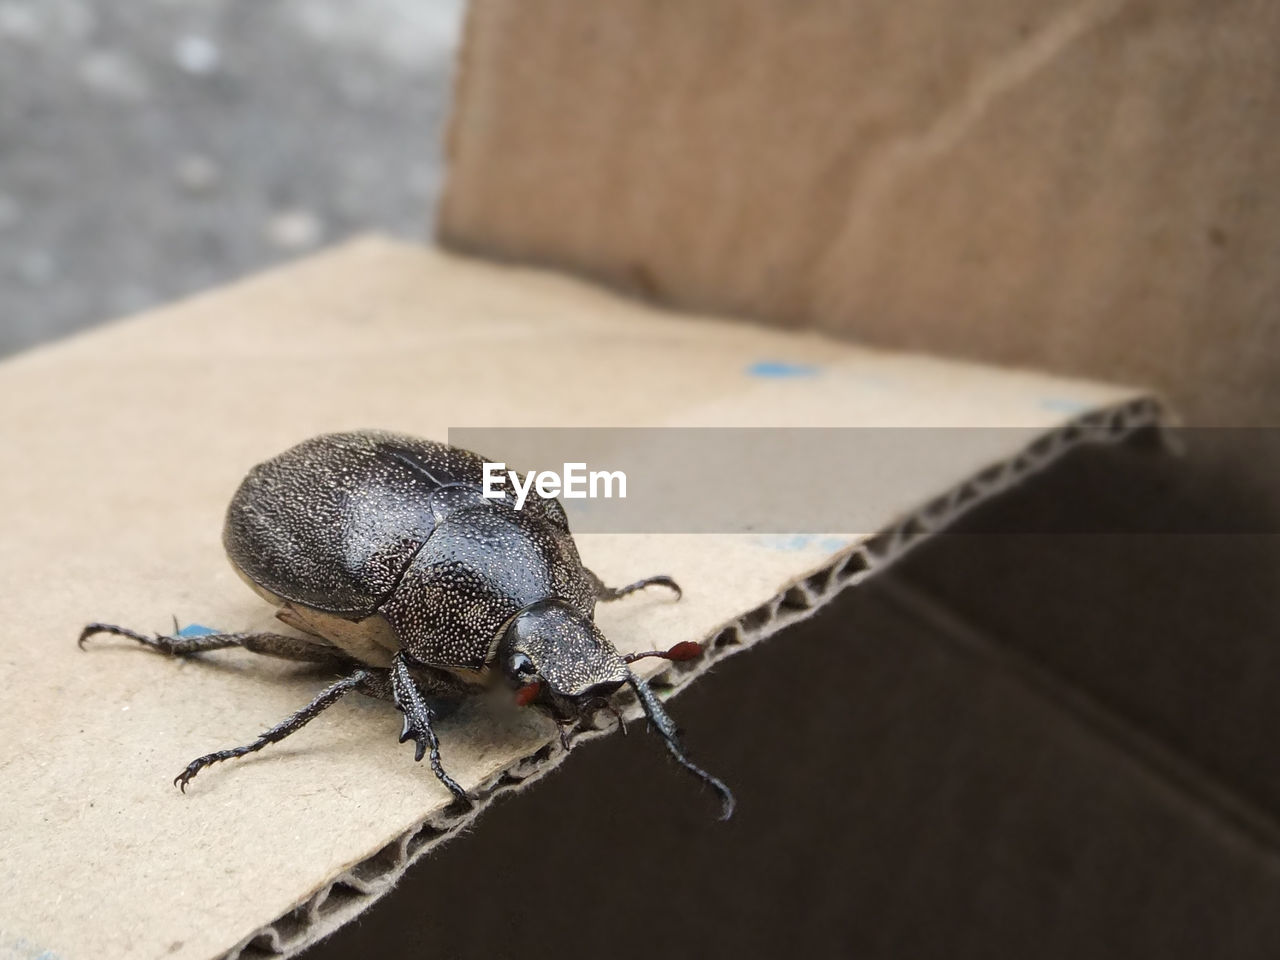 animal themes, one animal, animal, animal wildlife, animals in the wild, invertebrate, close-up, focus on foreground, insect, no people, animal body part, high angle view, animal antenna, day, full length, nature, outdoors, zoology, selective focus, wall